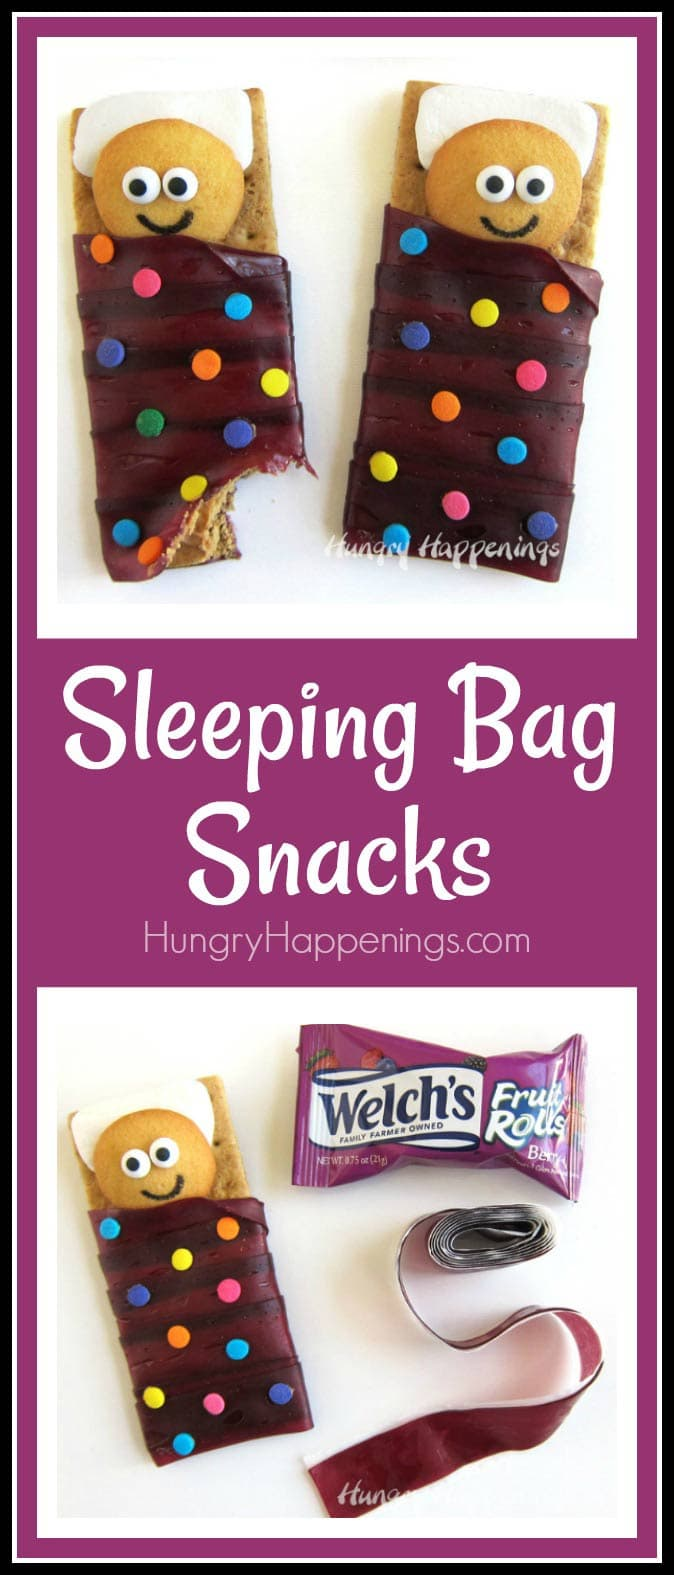 Sleeping Bag Snacks - Cookie kids sleeping on marshmallow pillows and graham crackers topped with peanut butter wrapped in Welch's Fruit Rolls sleeping bags.